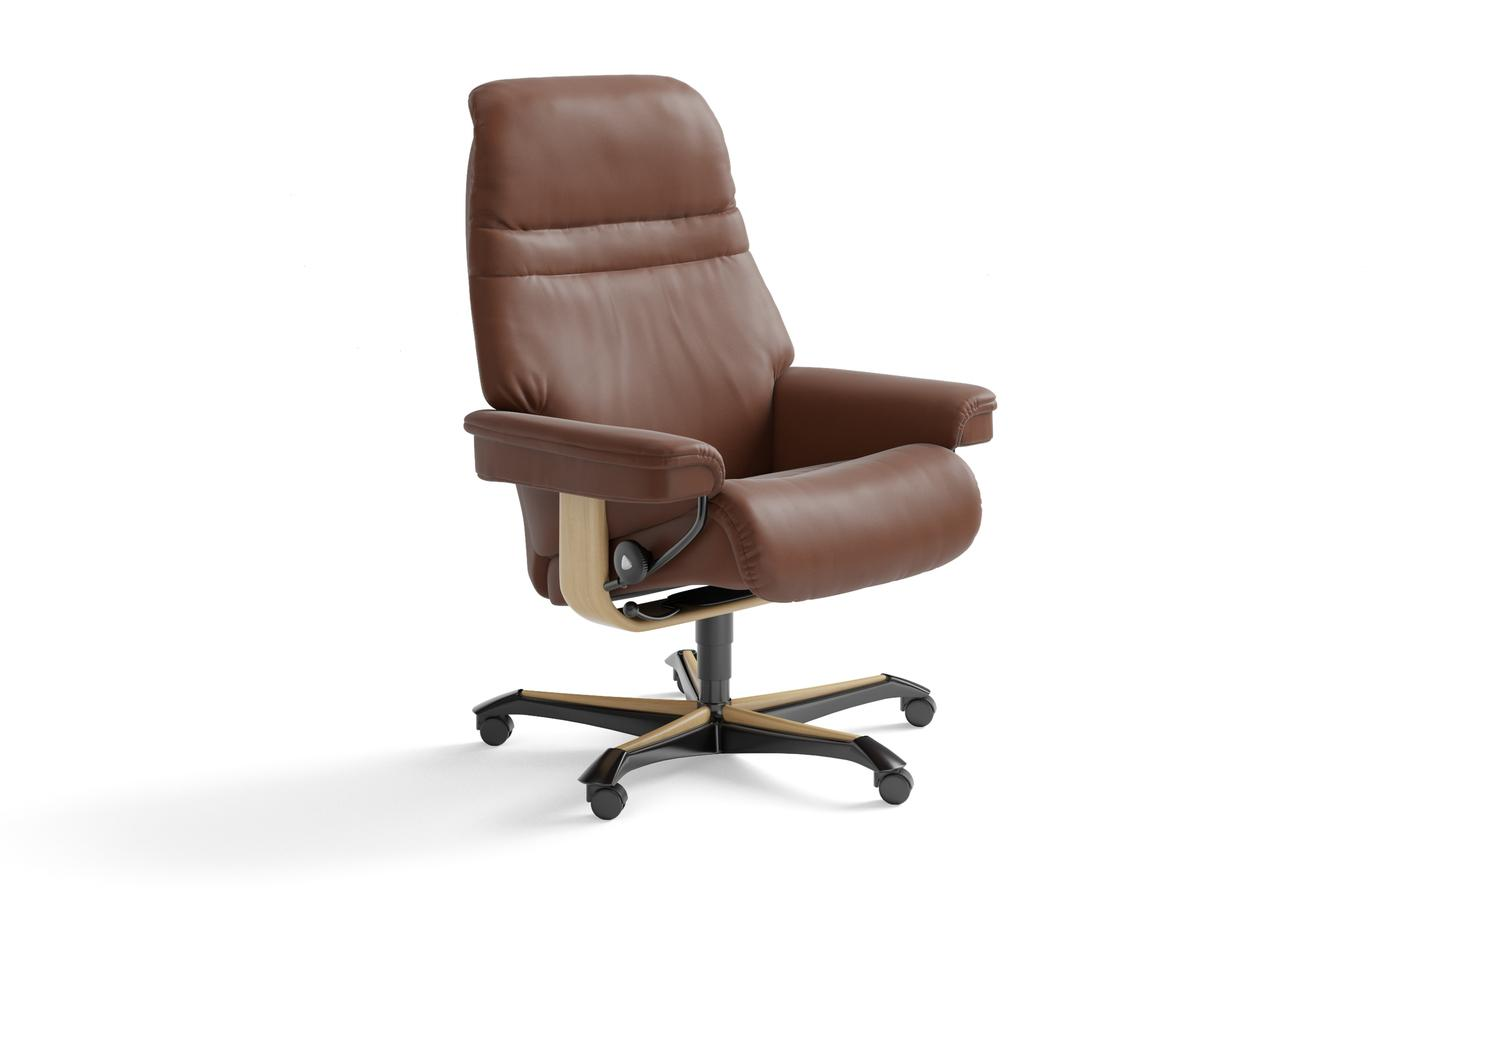 Stressless By EkornesStressless Sunrise Office